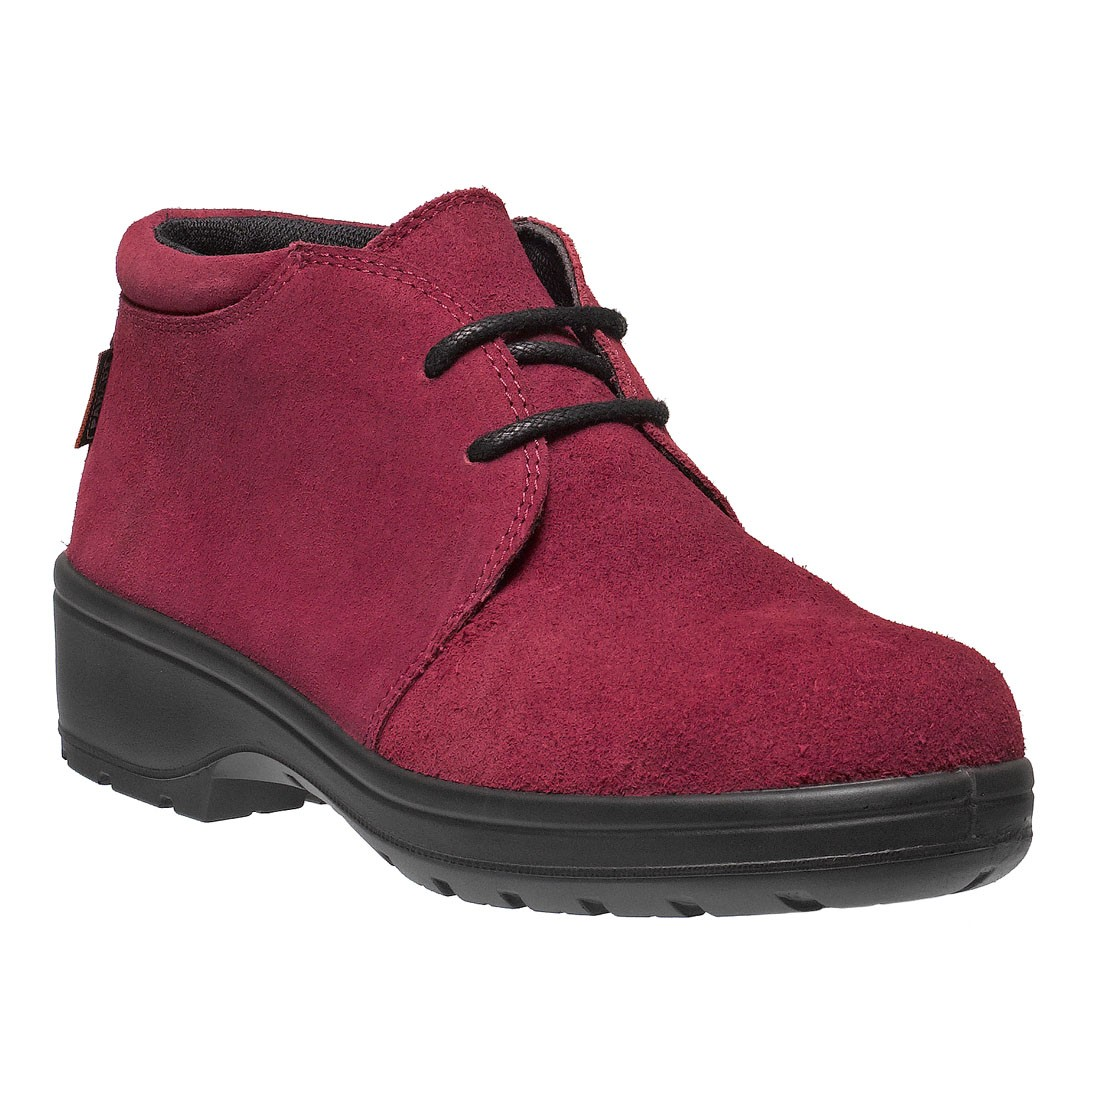 Dana Lightweight Red Leather Desert Style S3 Ladies Safety Work Boots